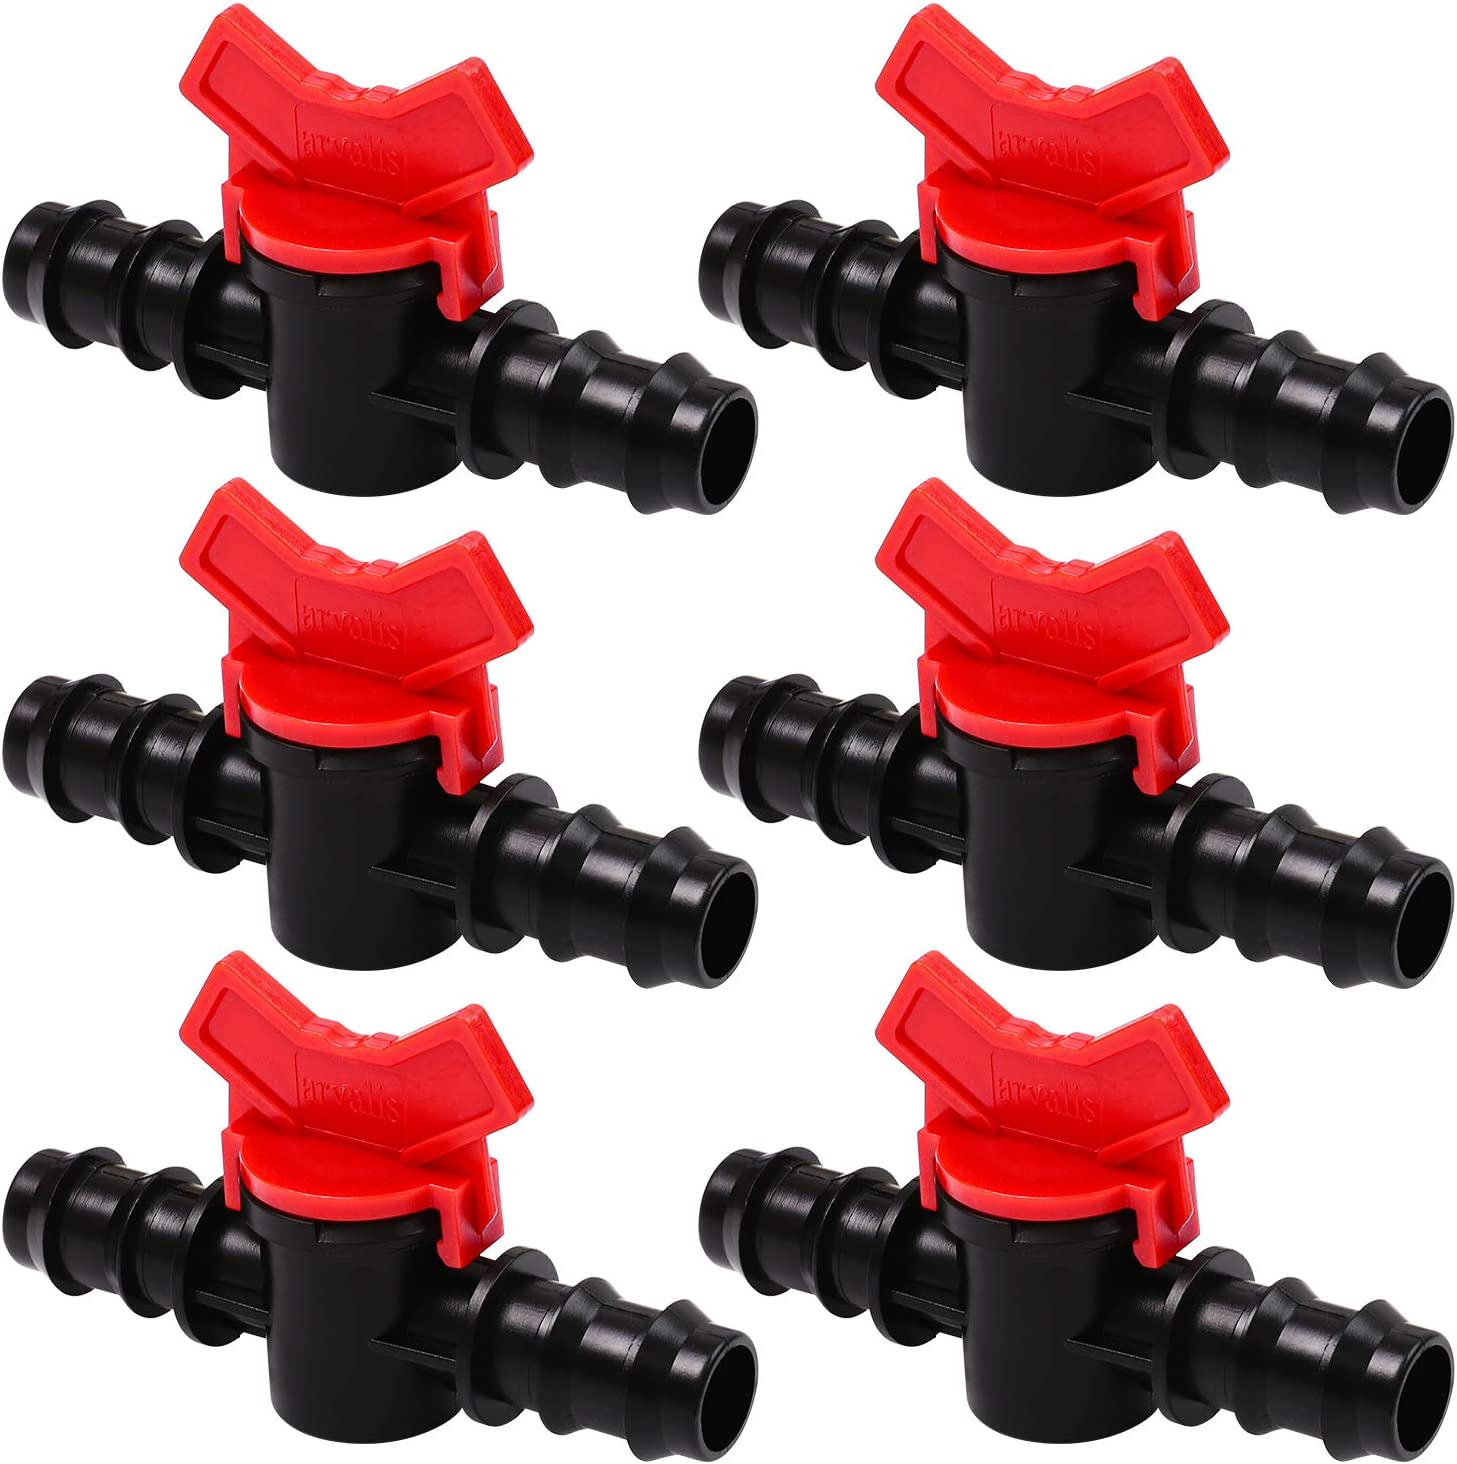 URATOT 6 Pieces Drip Irrigation Switch Valve 3/4 Inch Valve for 20mm Irrigation Tube, Hose Connectors Barbed Valve Suitable for Agricultura Garden